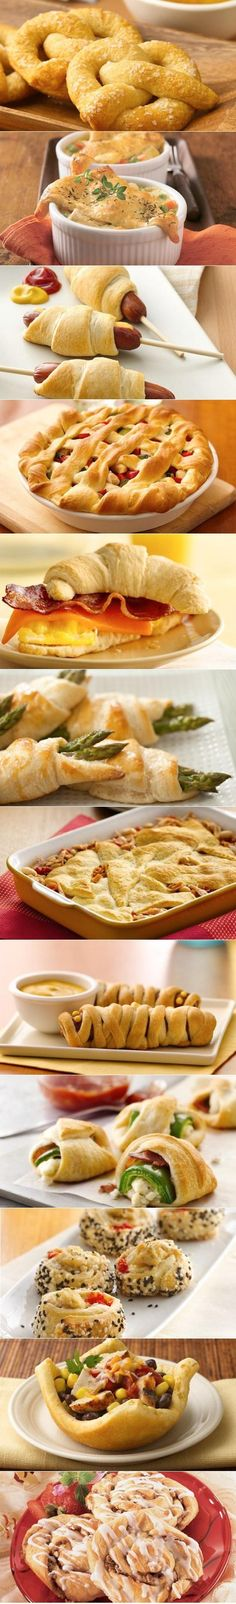 #delaineysdiner - Follow Kid Chef Delainey on Facebook and youtube Delaineys Diner - Crescent Roll Recipes